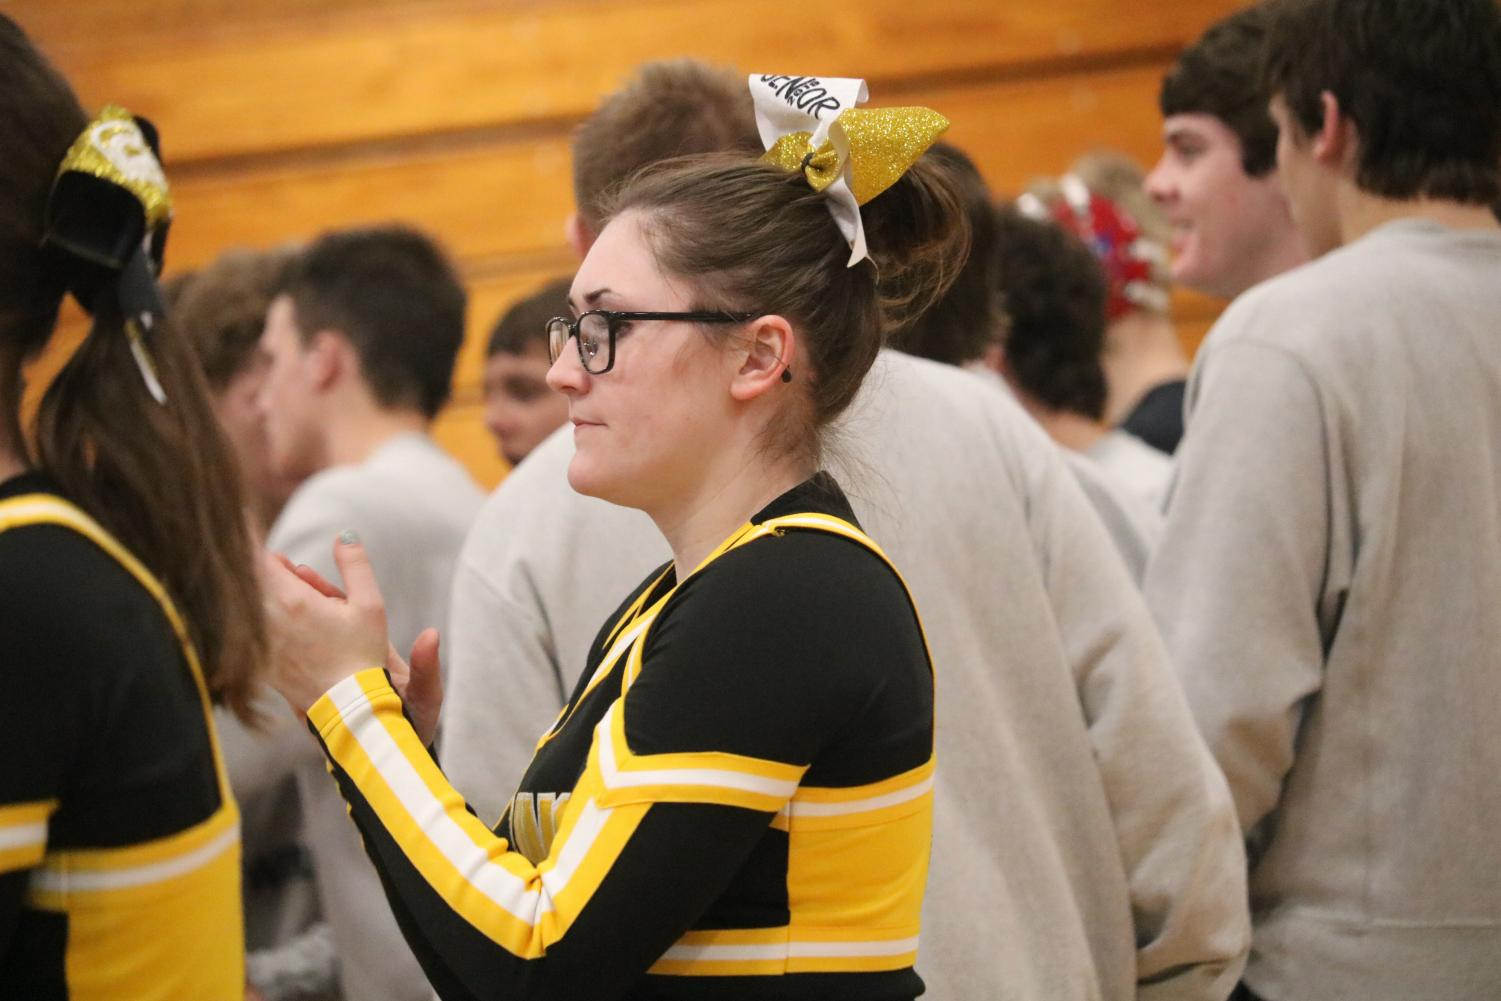 DOING WHAT I LOVE - Senior Chamilla Colton cheers during a wrestling meet. After being badly burned at just three years old, Colton was left with scars on her arms, chest and part of her face. She said she has used the experience to shape her into who she is today.